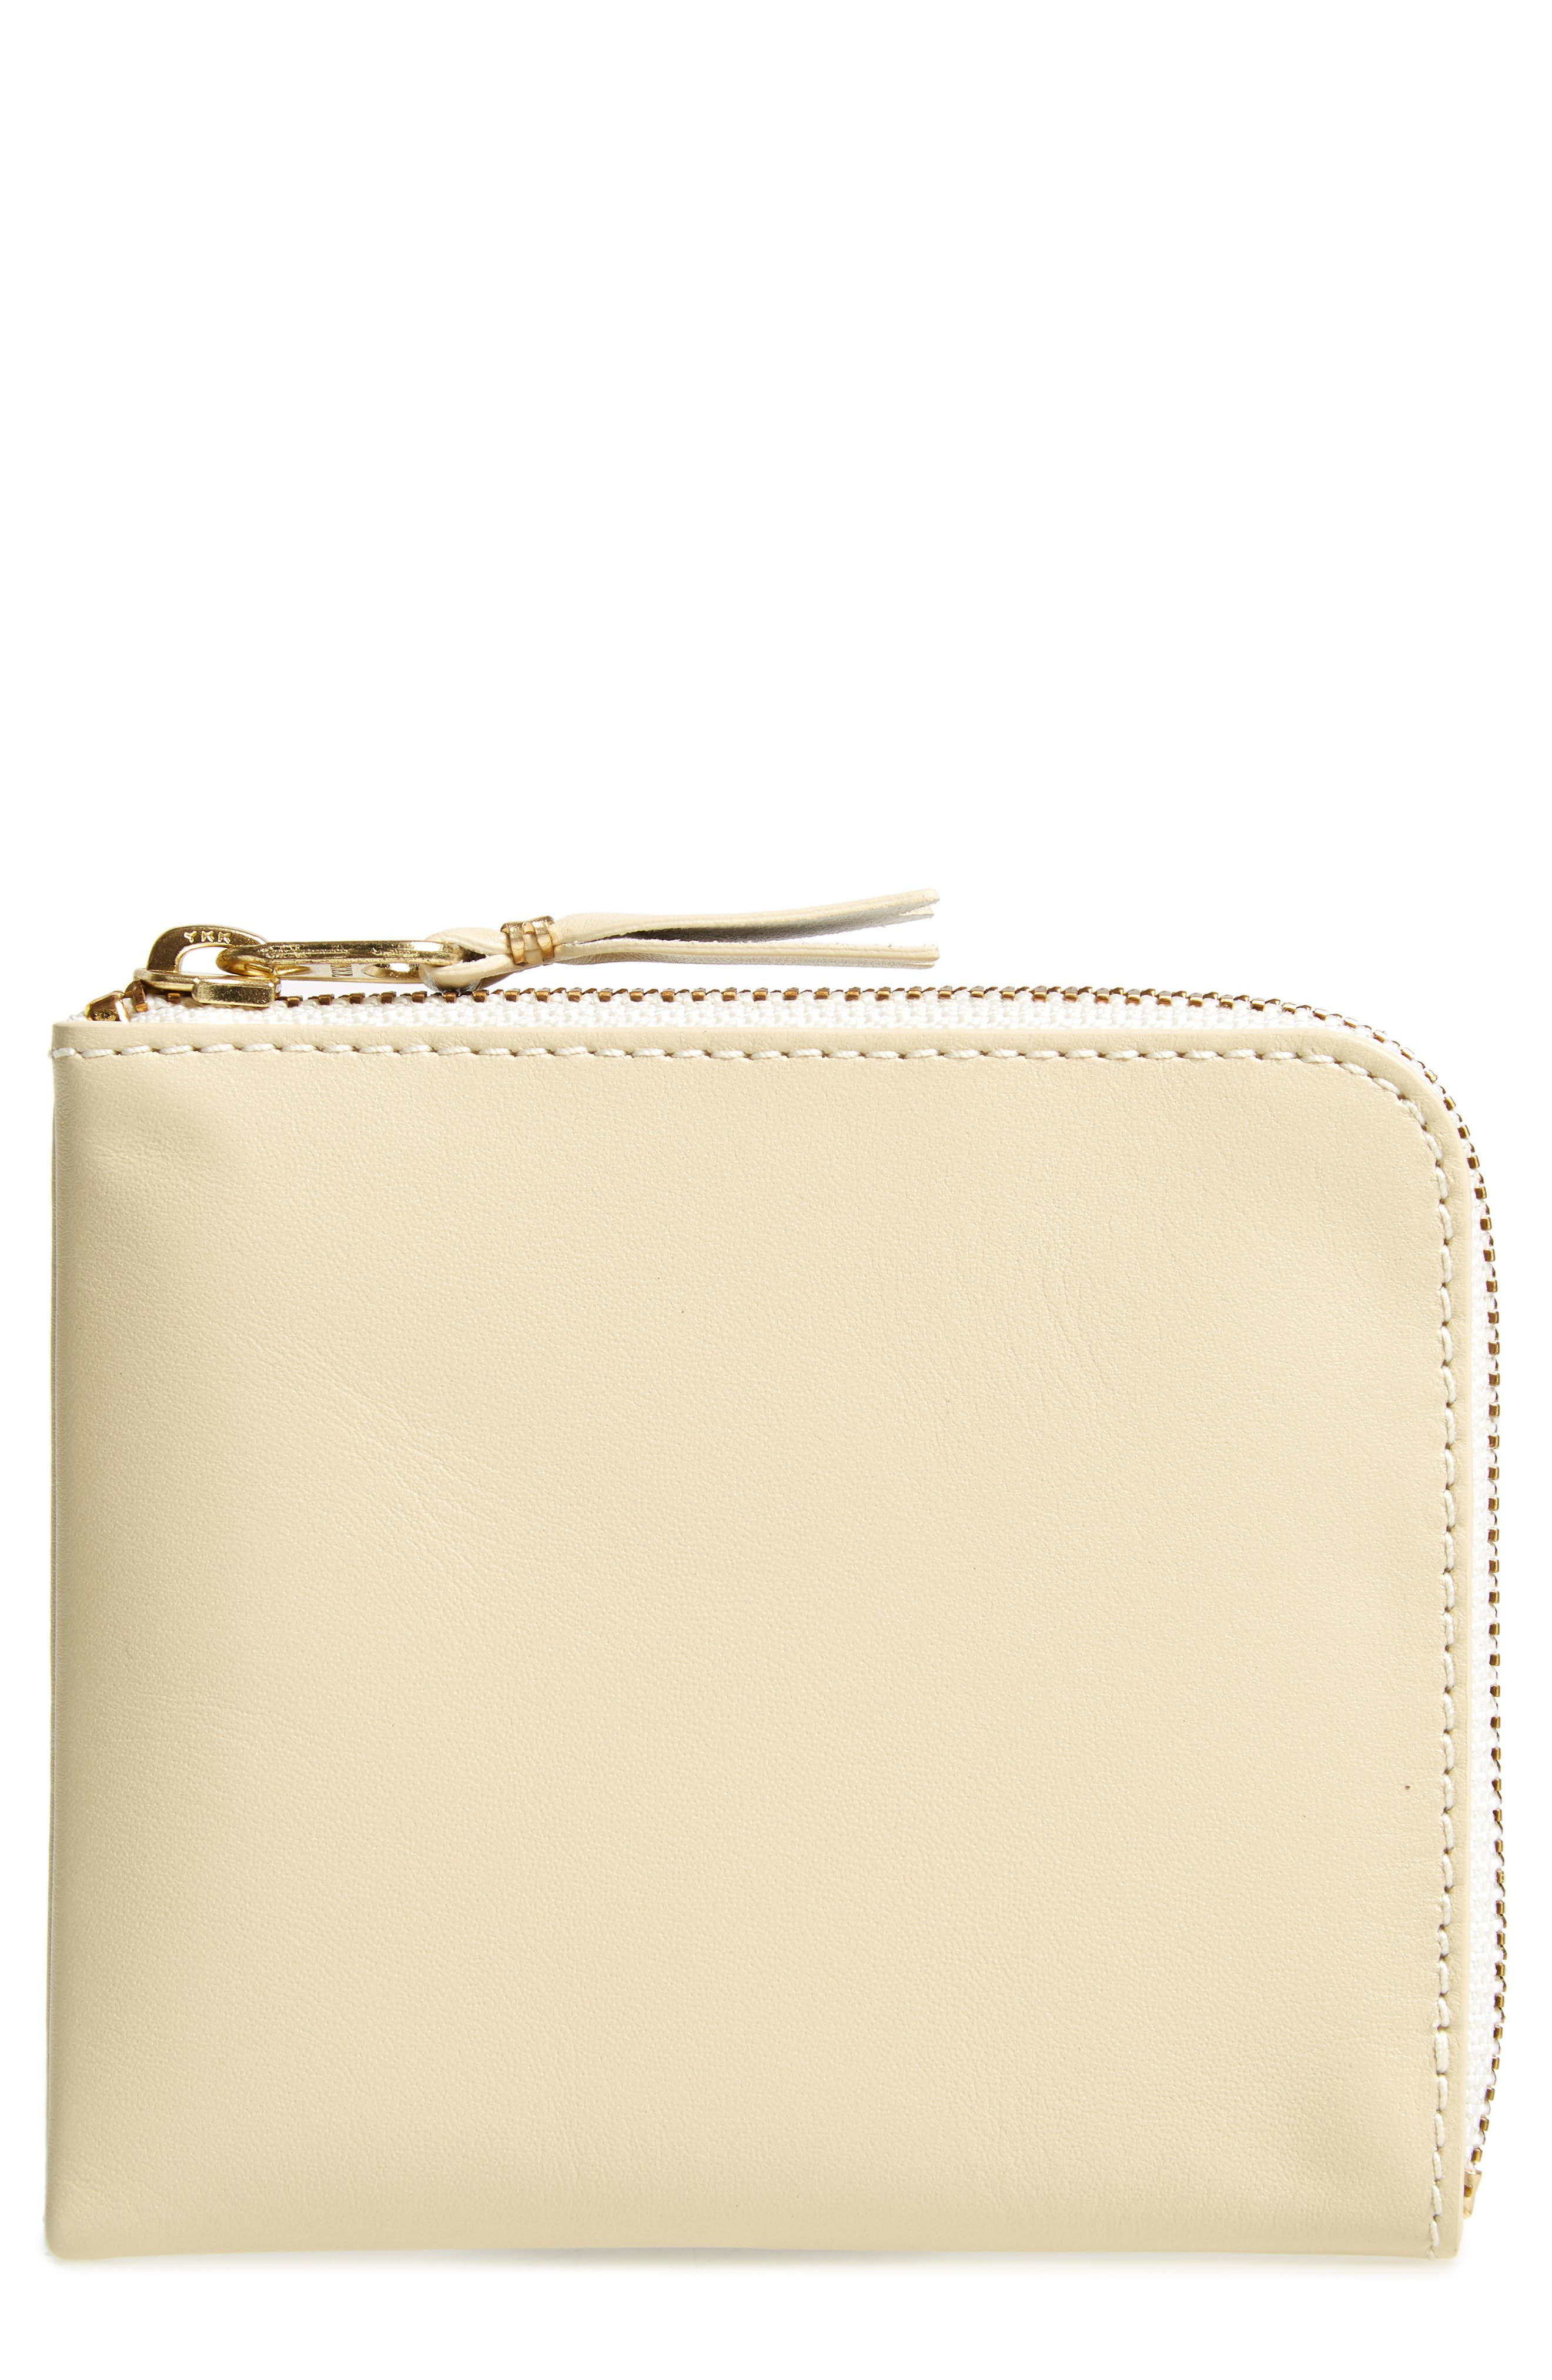 Classic Leather Line Wallet,                             Main thumbnail 1, color,                             OFF WHITE